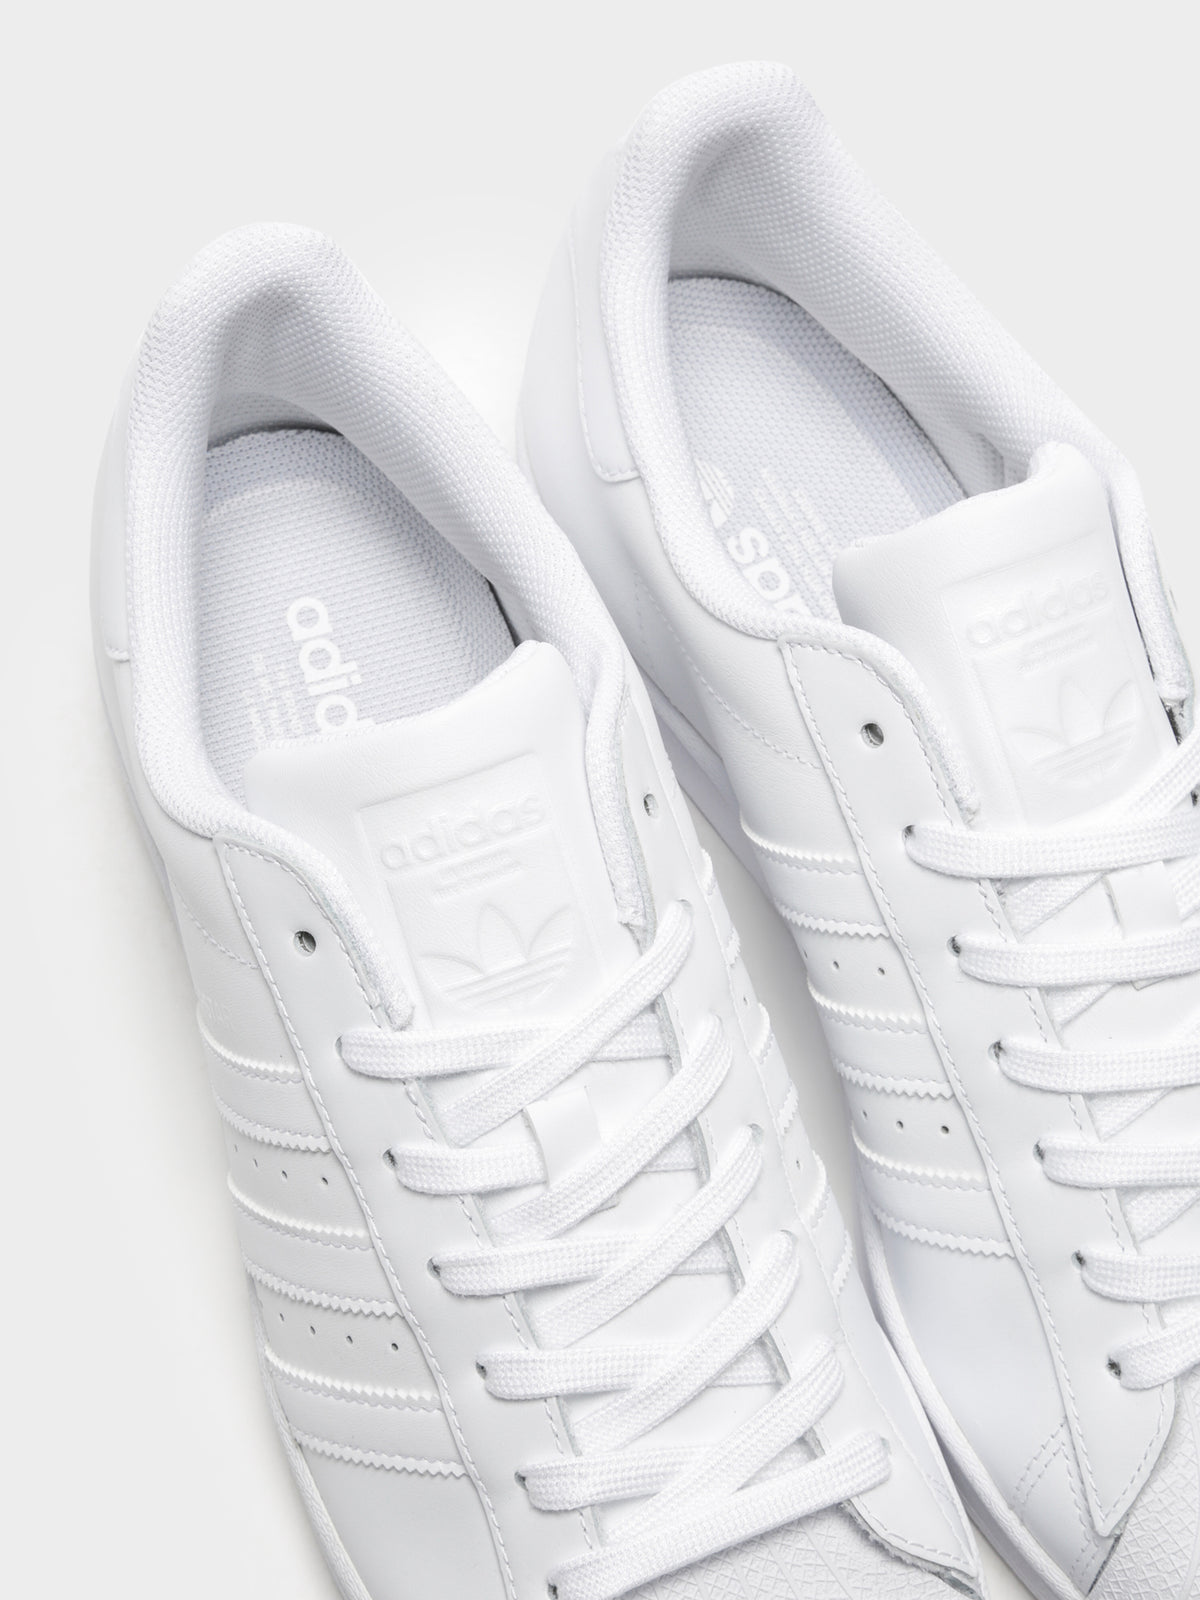 Unisex Superstar Sneakers in White